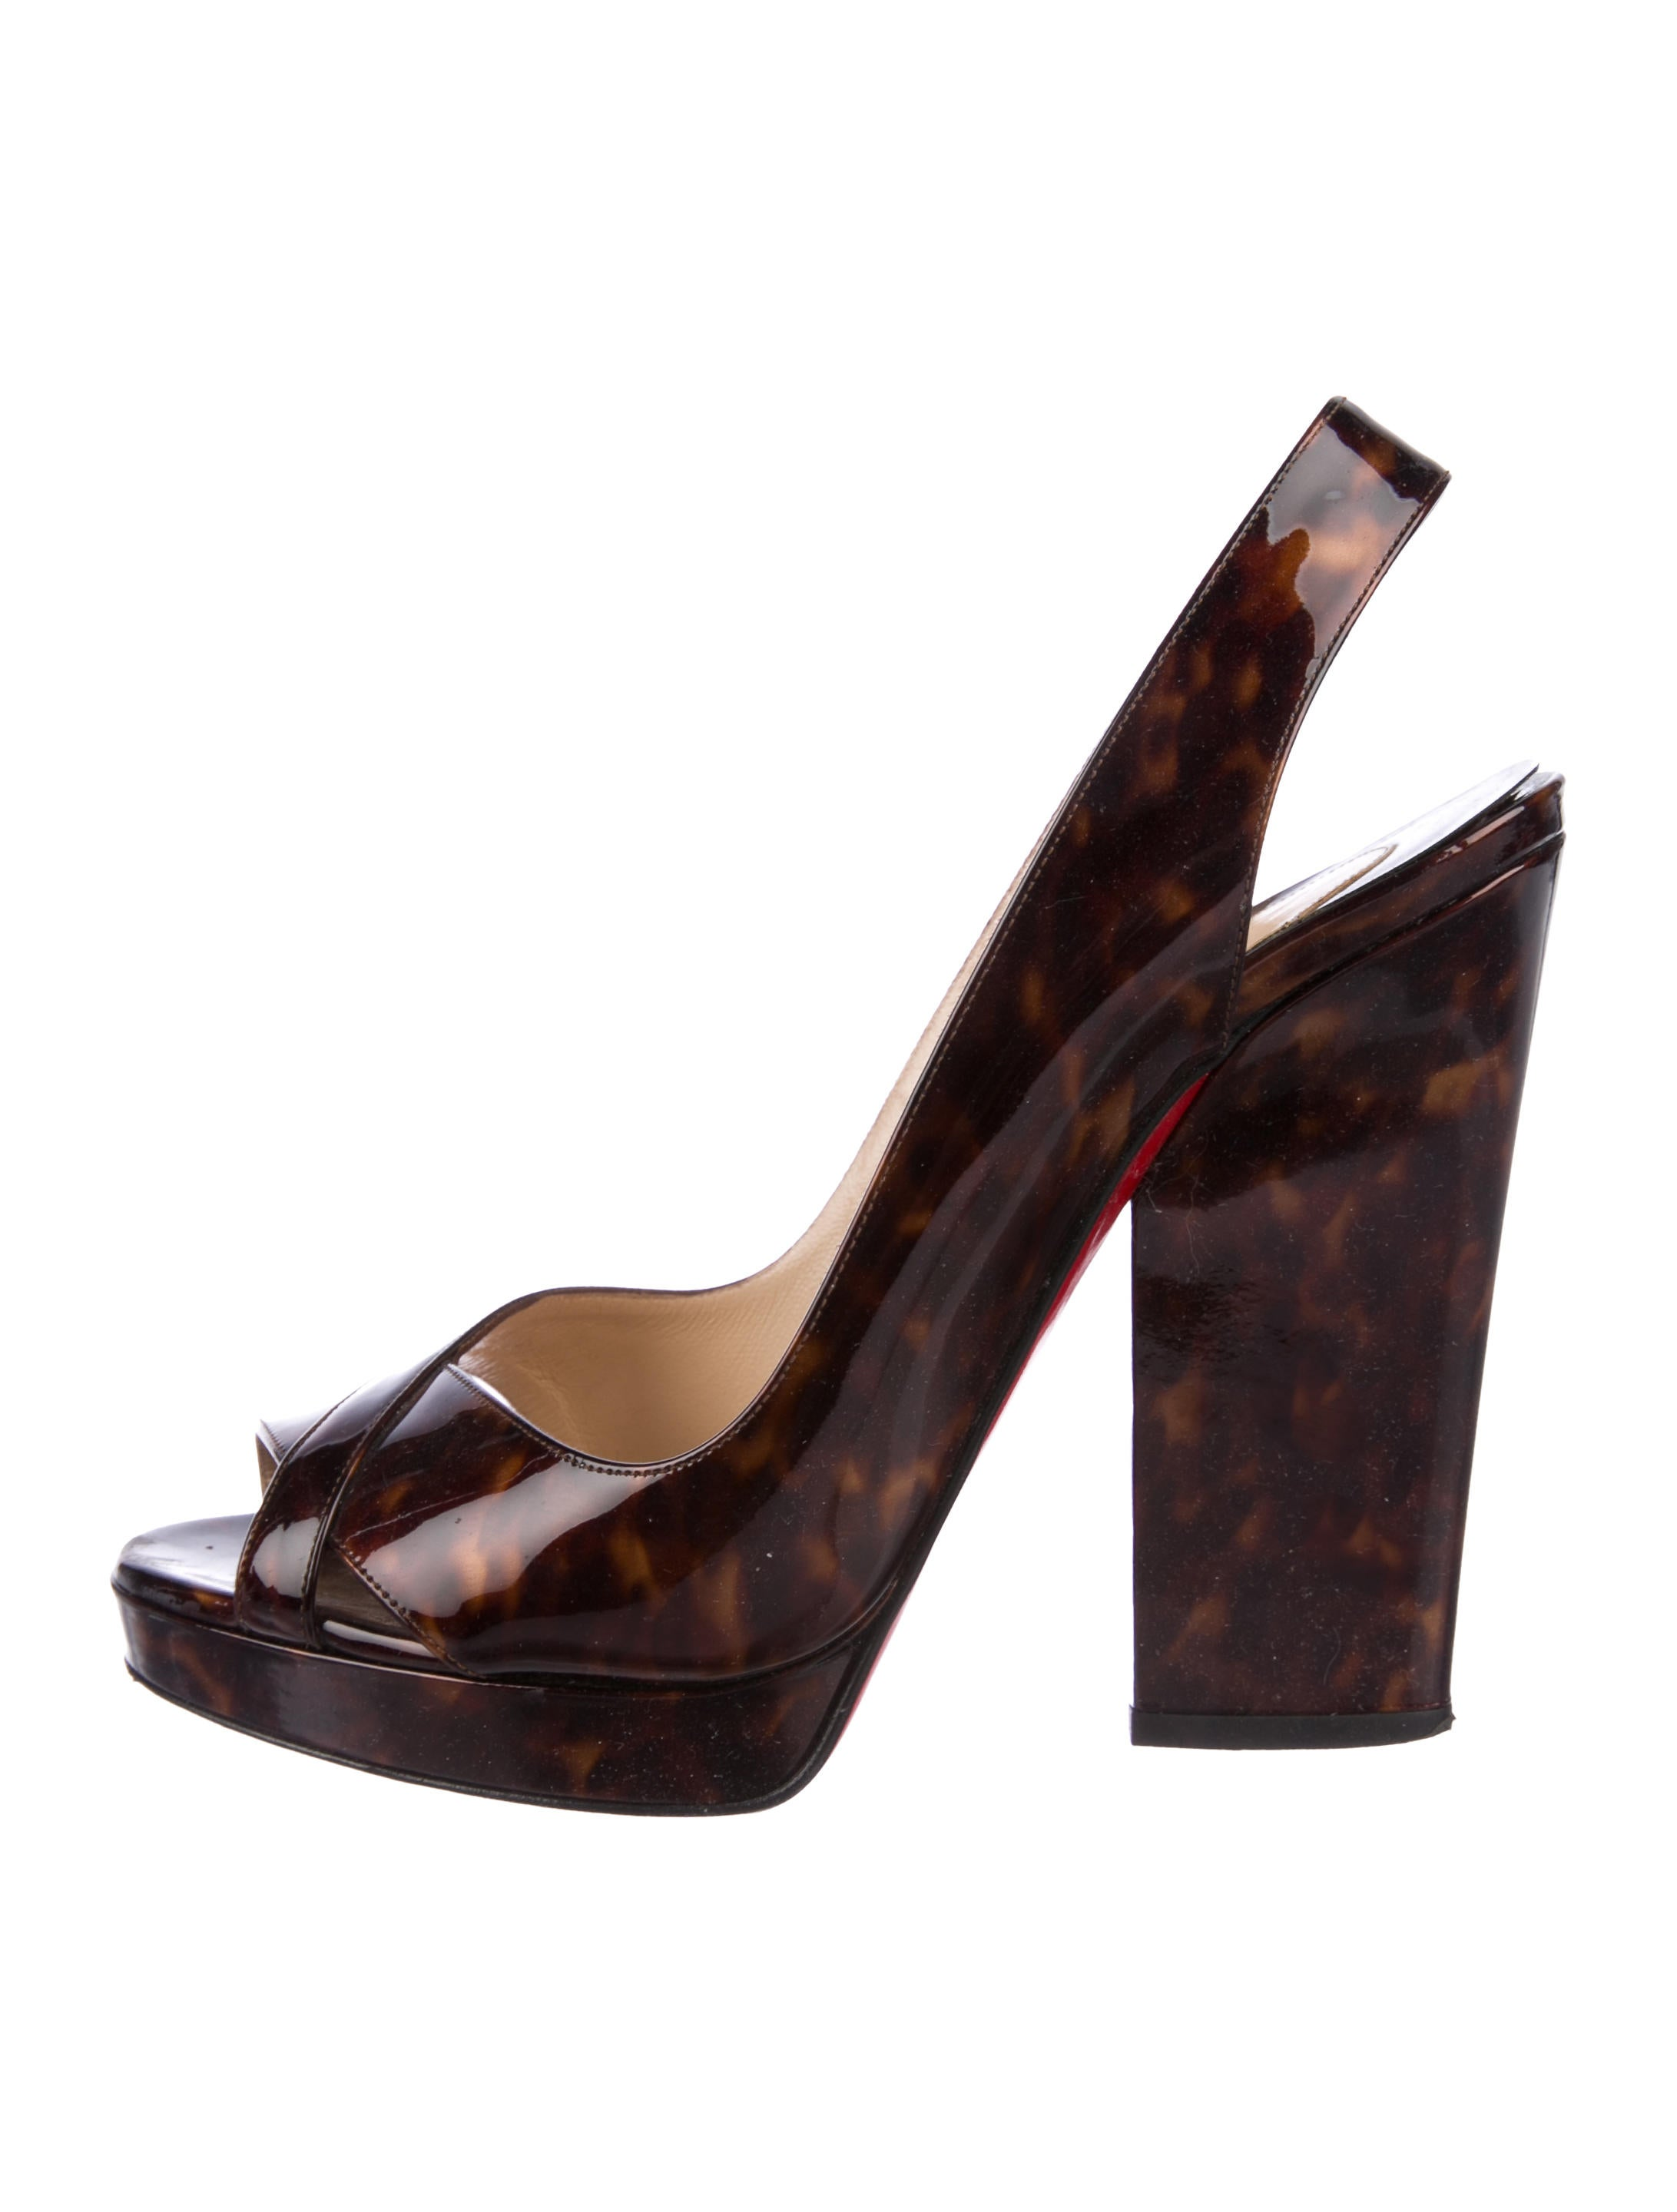 discount deals Christian Louboutin Tortoiseshell Slingback Sandals Inexpensive online clearance fake really cheap Se4udEWQI